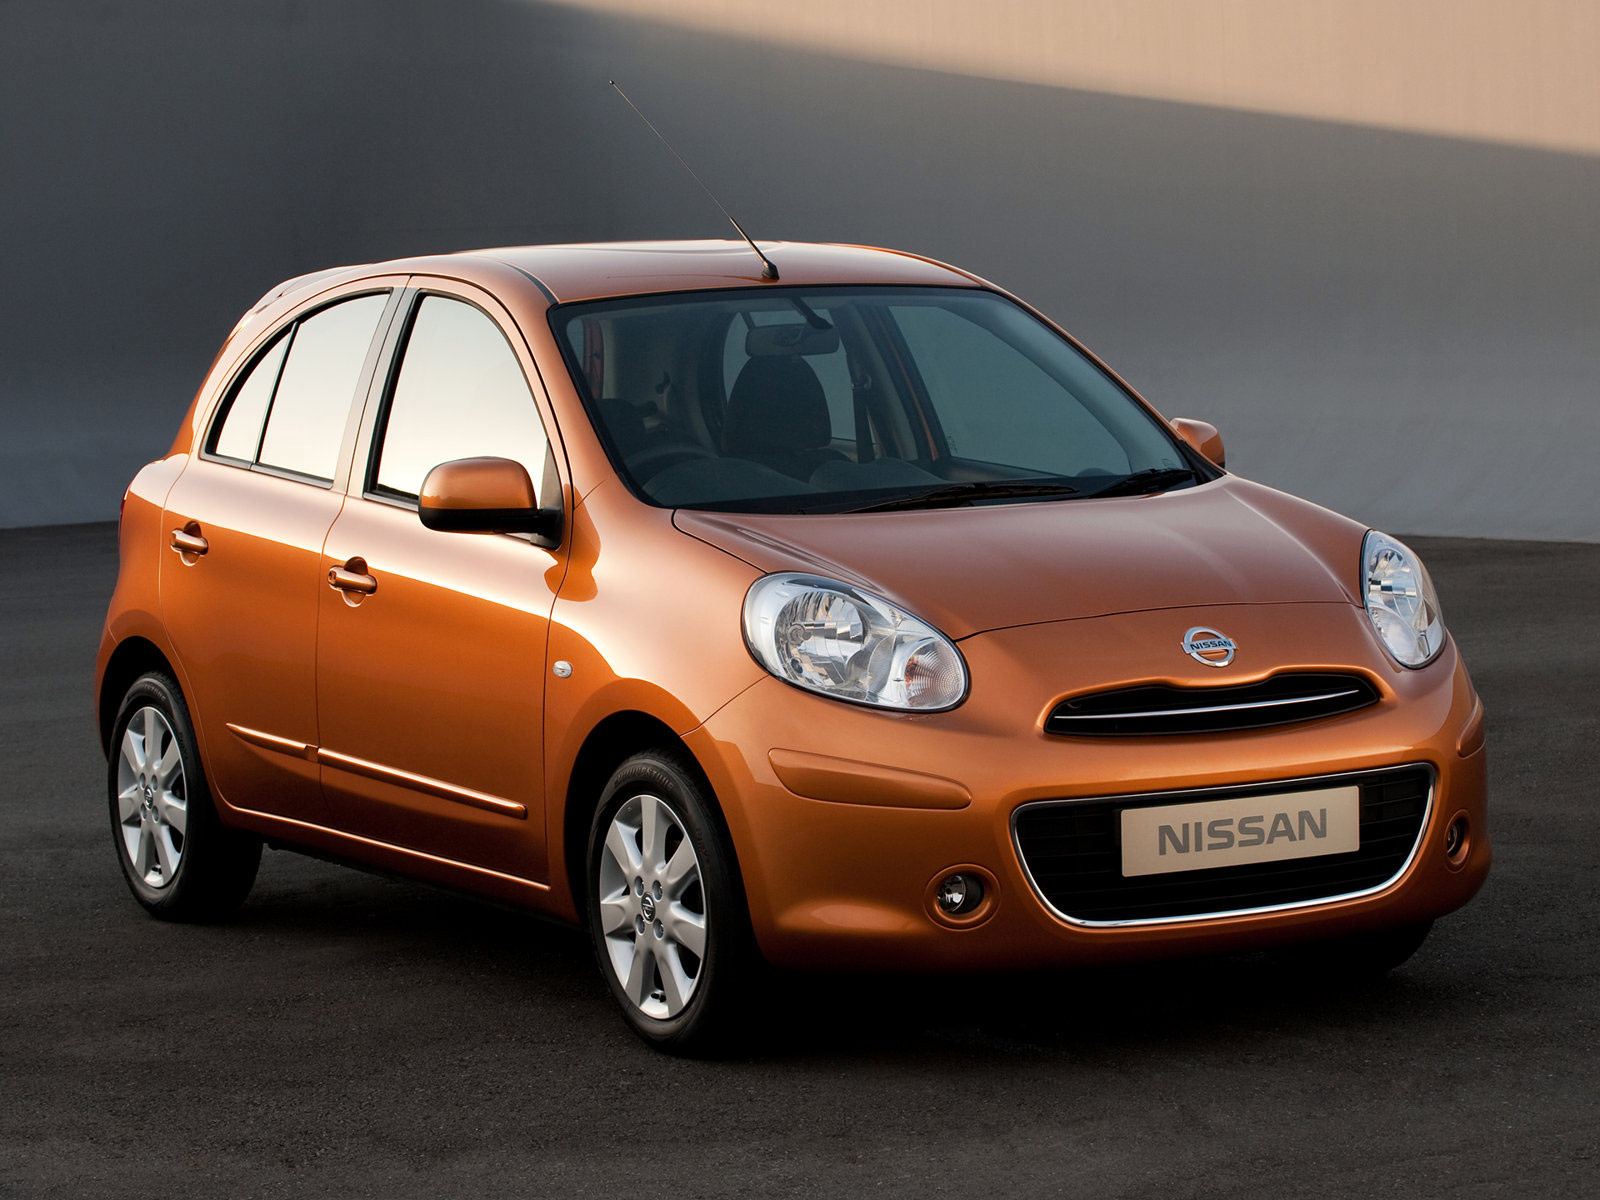 2011 nissan micra japanese car photos review. Black Bedroom Furniture Sets. Home Design Ideas